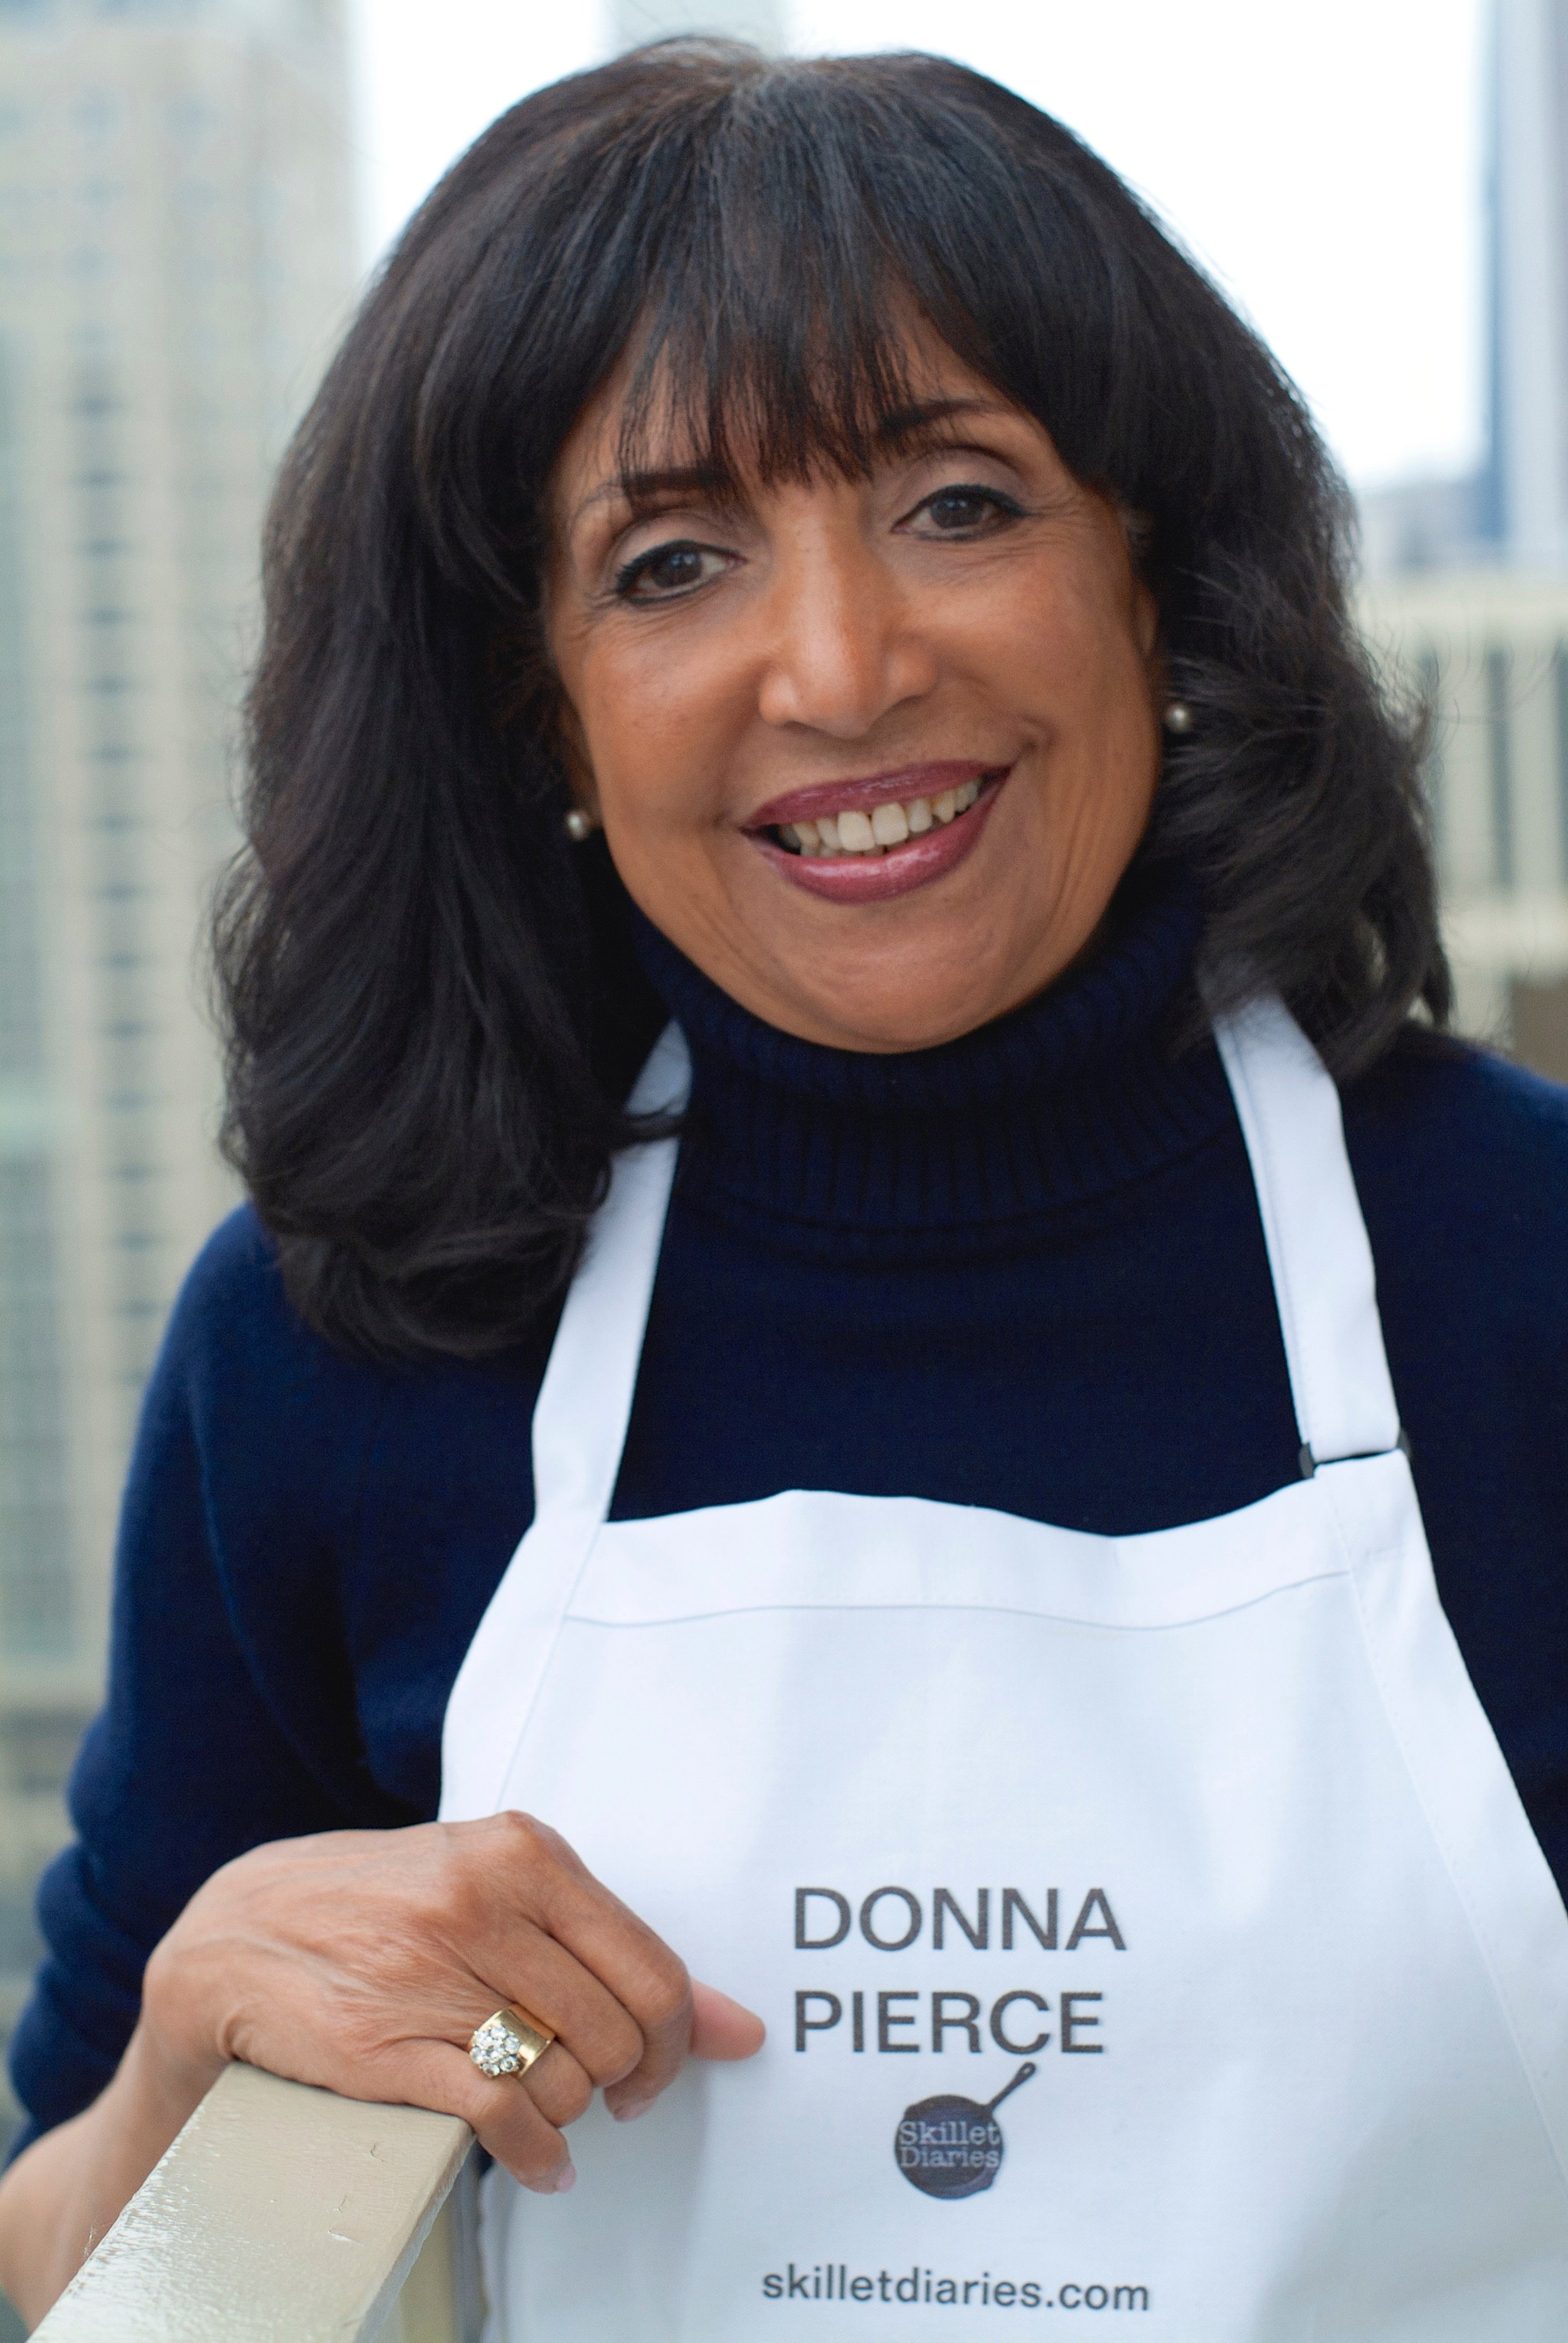 Donna Battle Pierce Headshot.jpg